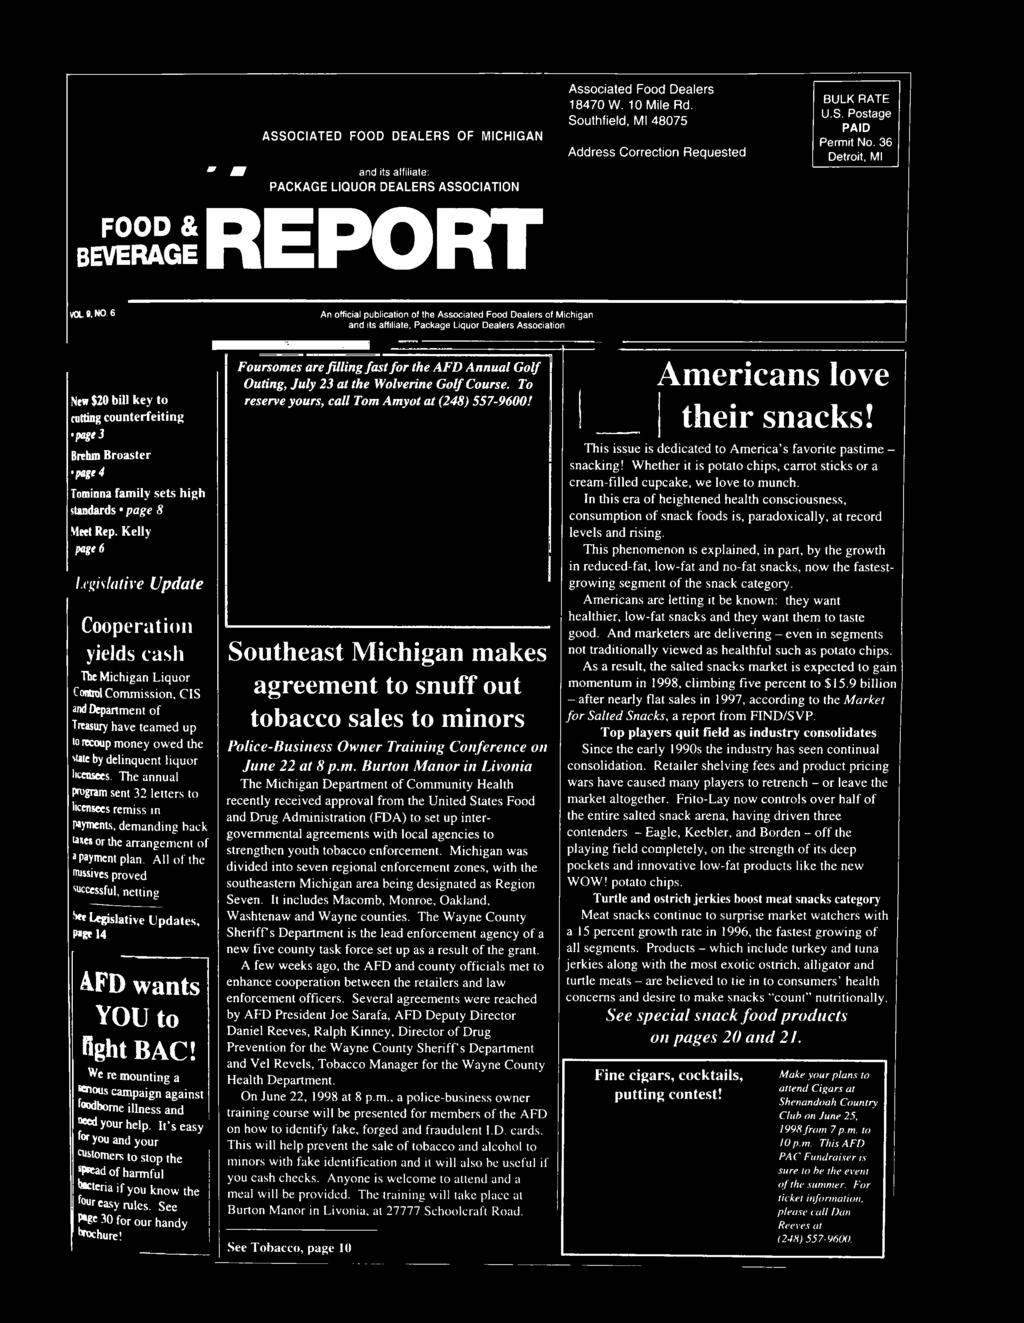 Report Food Beverage Pdf Brooaster Chicken Pkg 5 E Voucher Kelly Page 6 Legislative Update Cooperation Yields Cash The Michigan Liquor Control Commission Cis And